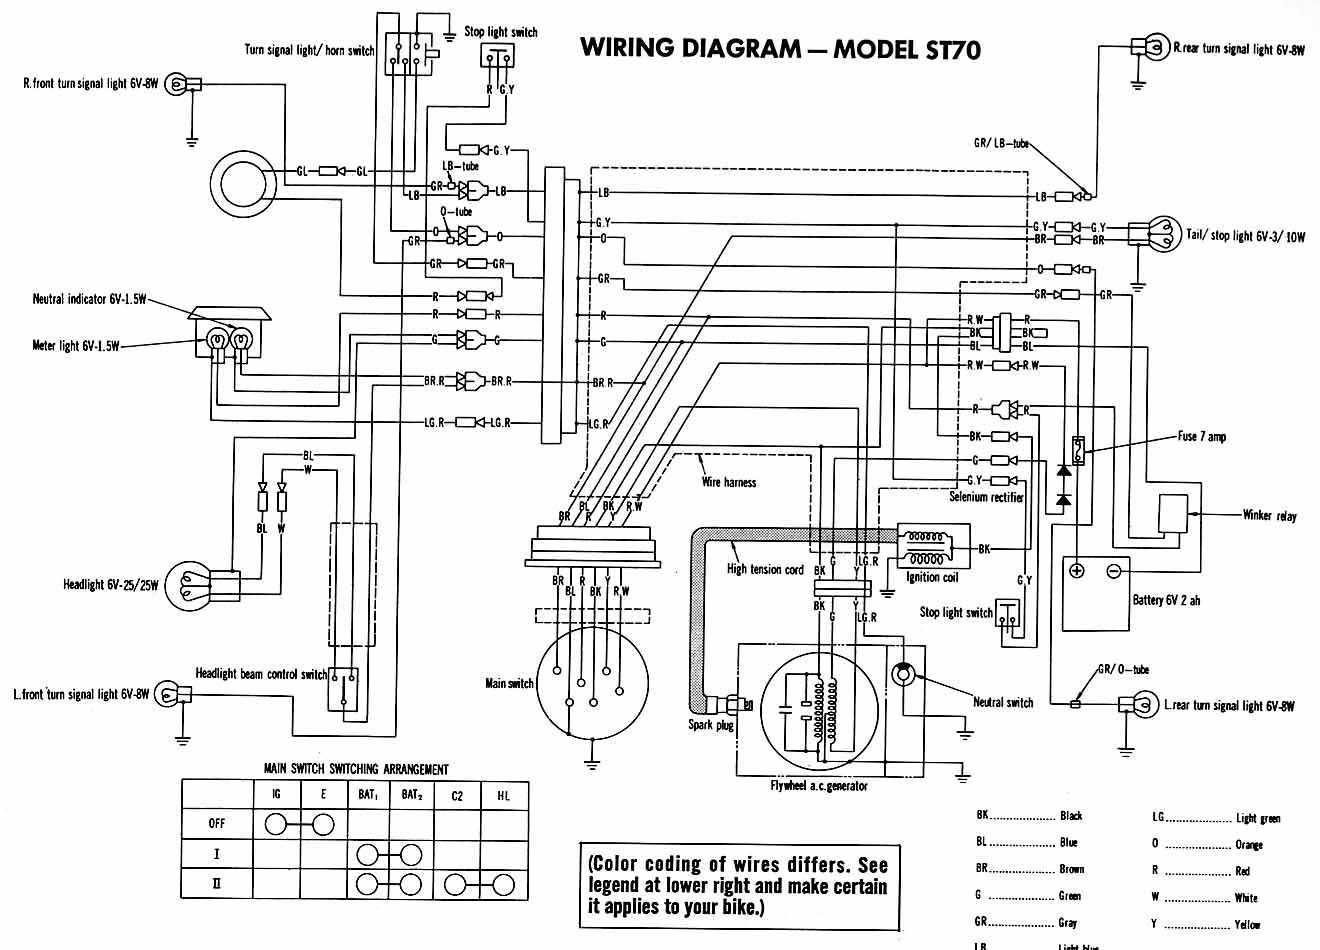 Honda Electrical Diagram Smart Wiring Diagrams 1997 Yamaha Warrior Schematics St70 Motorcycle All About Cg 125 Fourtrax 300